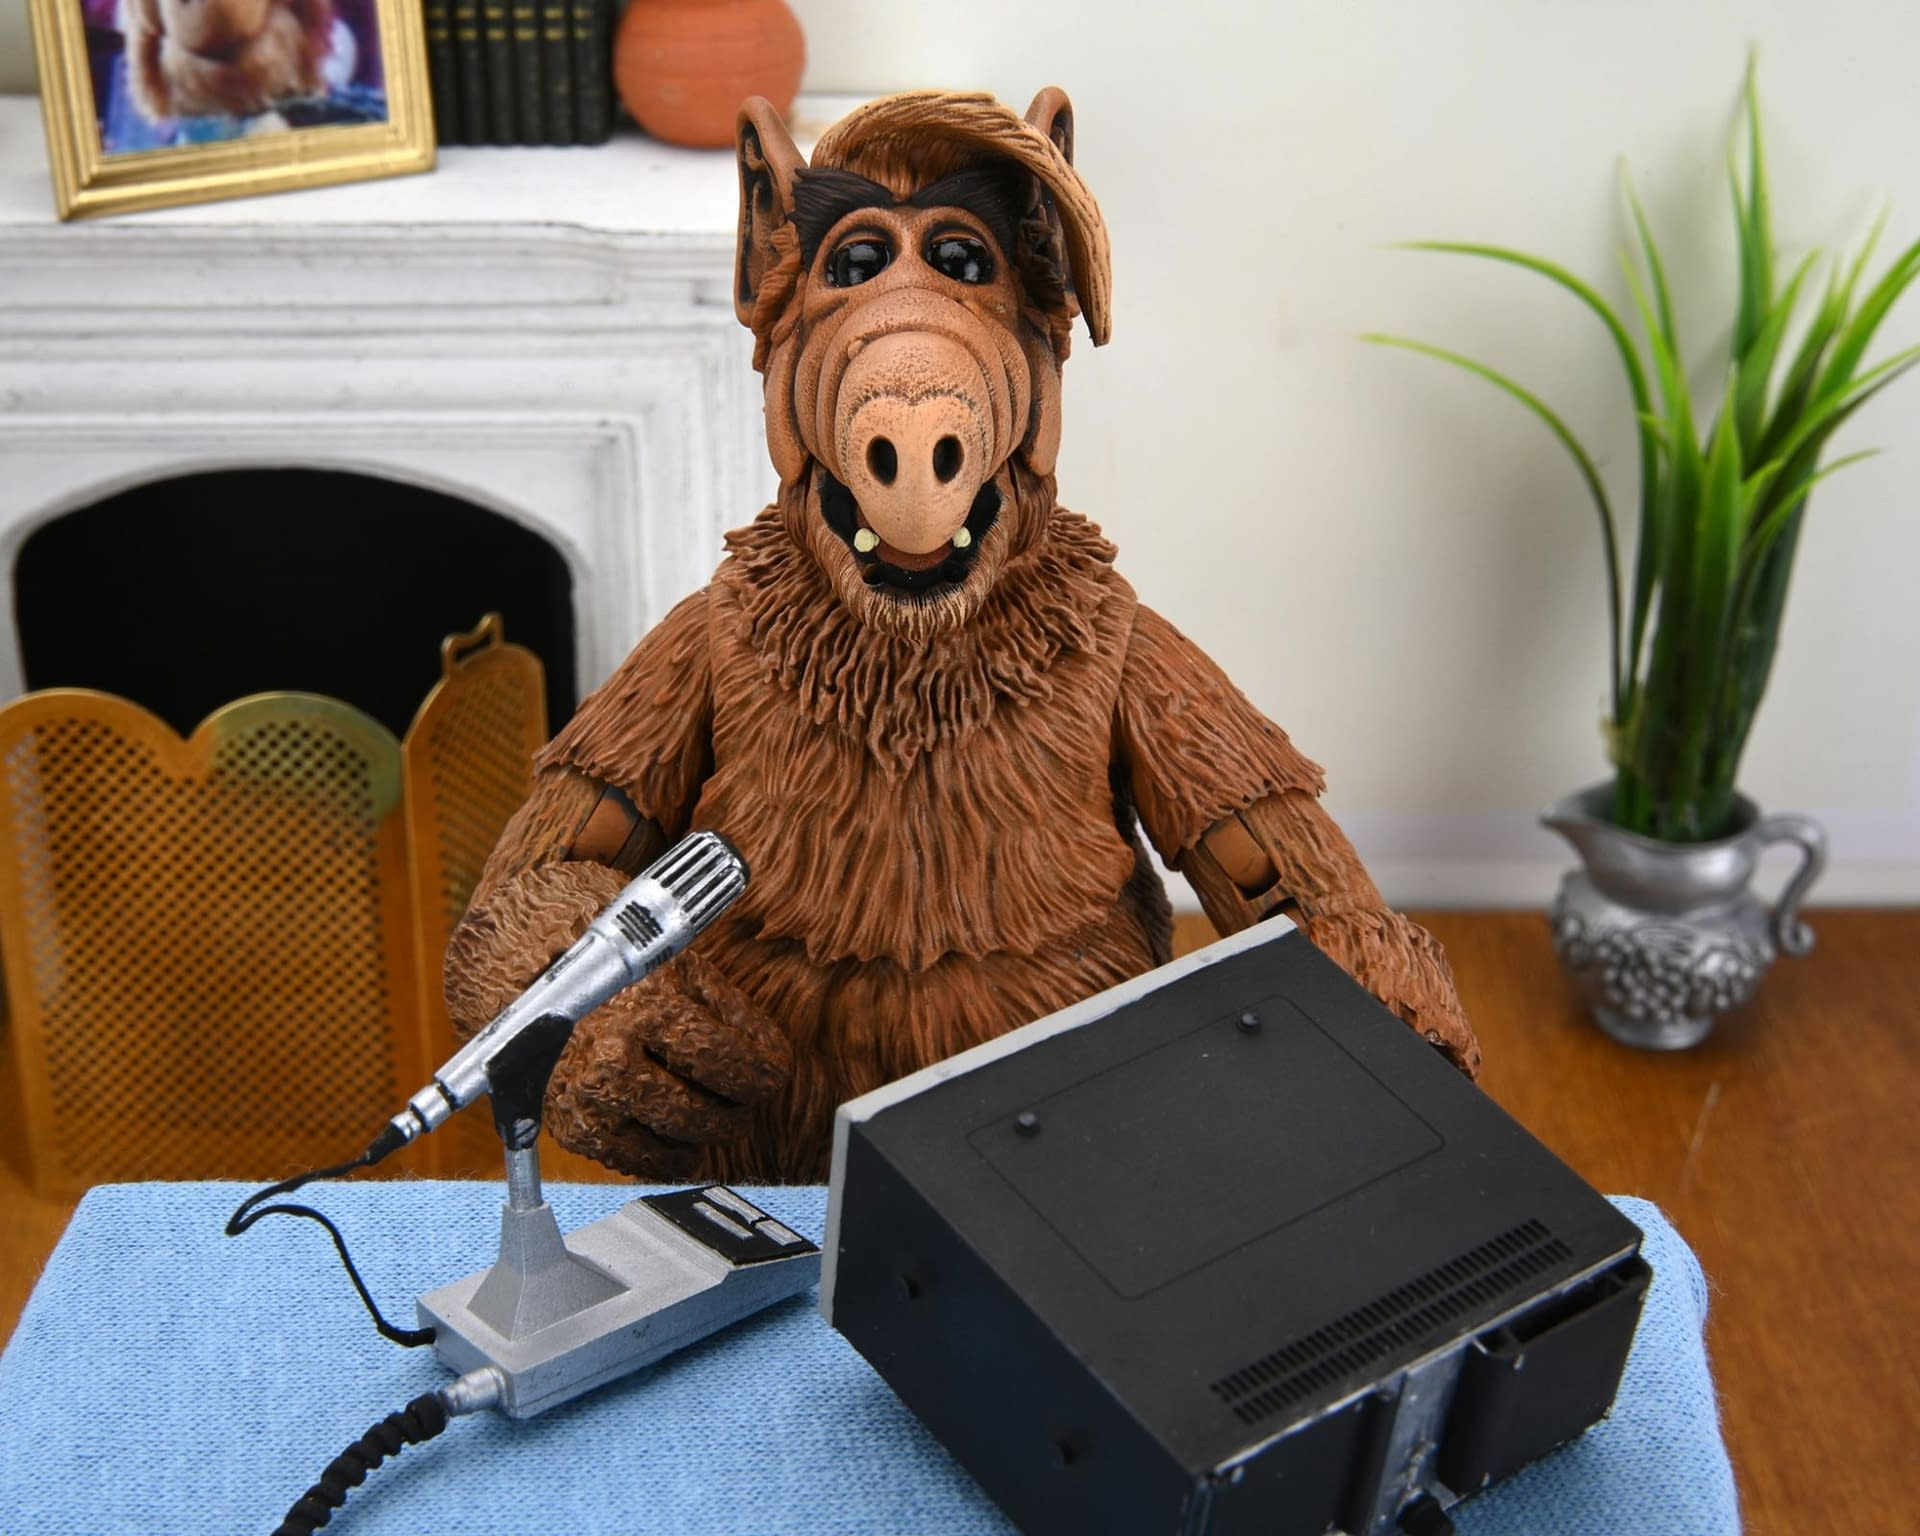 ALF Ultimate Figure On the Way From NECA In 2022